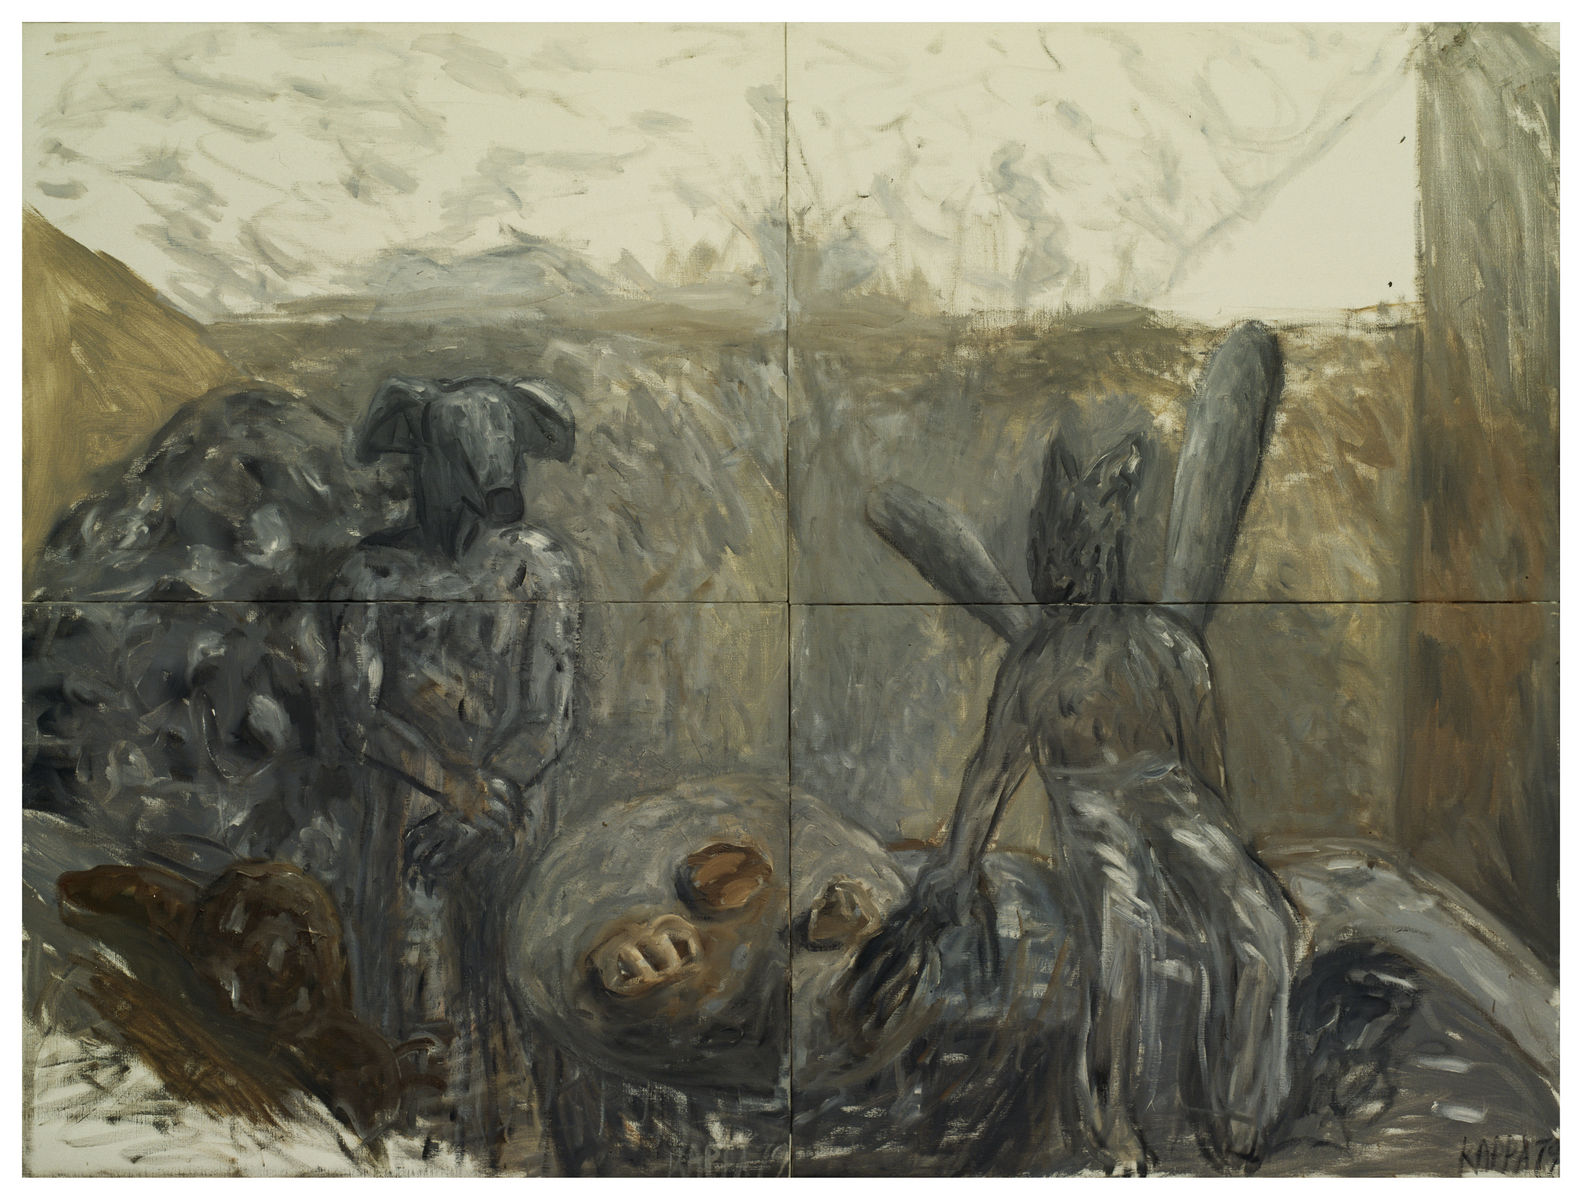 Ungeklärtes Zusammentreffen , 1979, Oil on canvas, 47.24h x 62.99h in (120h x 160w cm in four-parts), Private collection